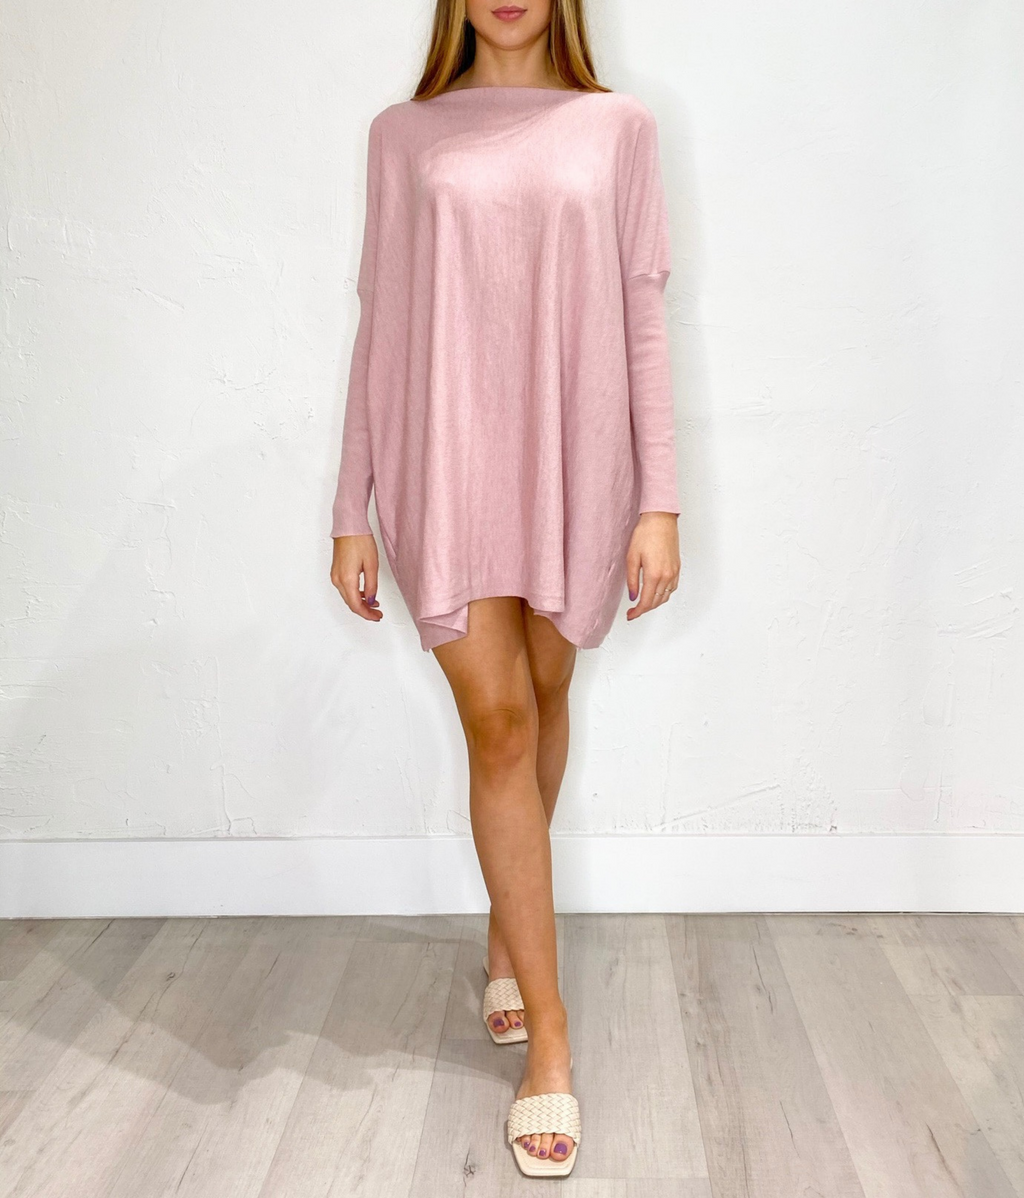 Paige Sweater in Blush